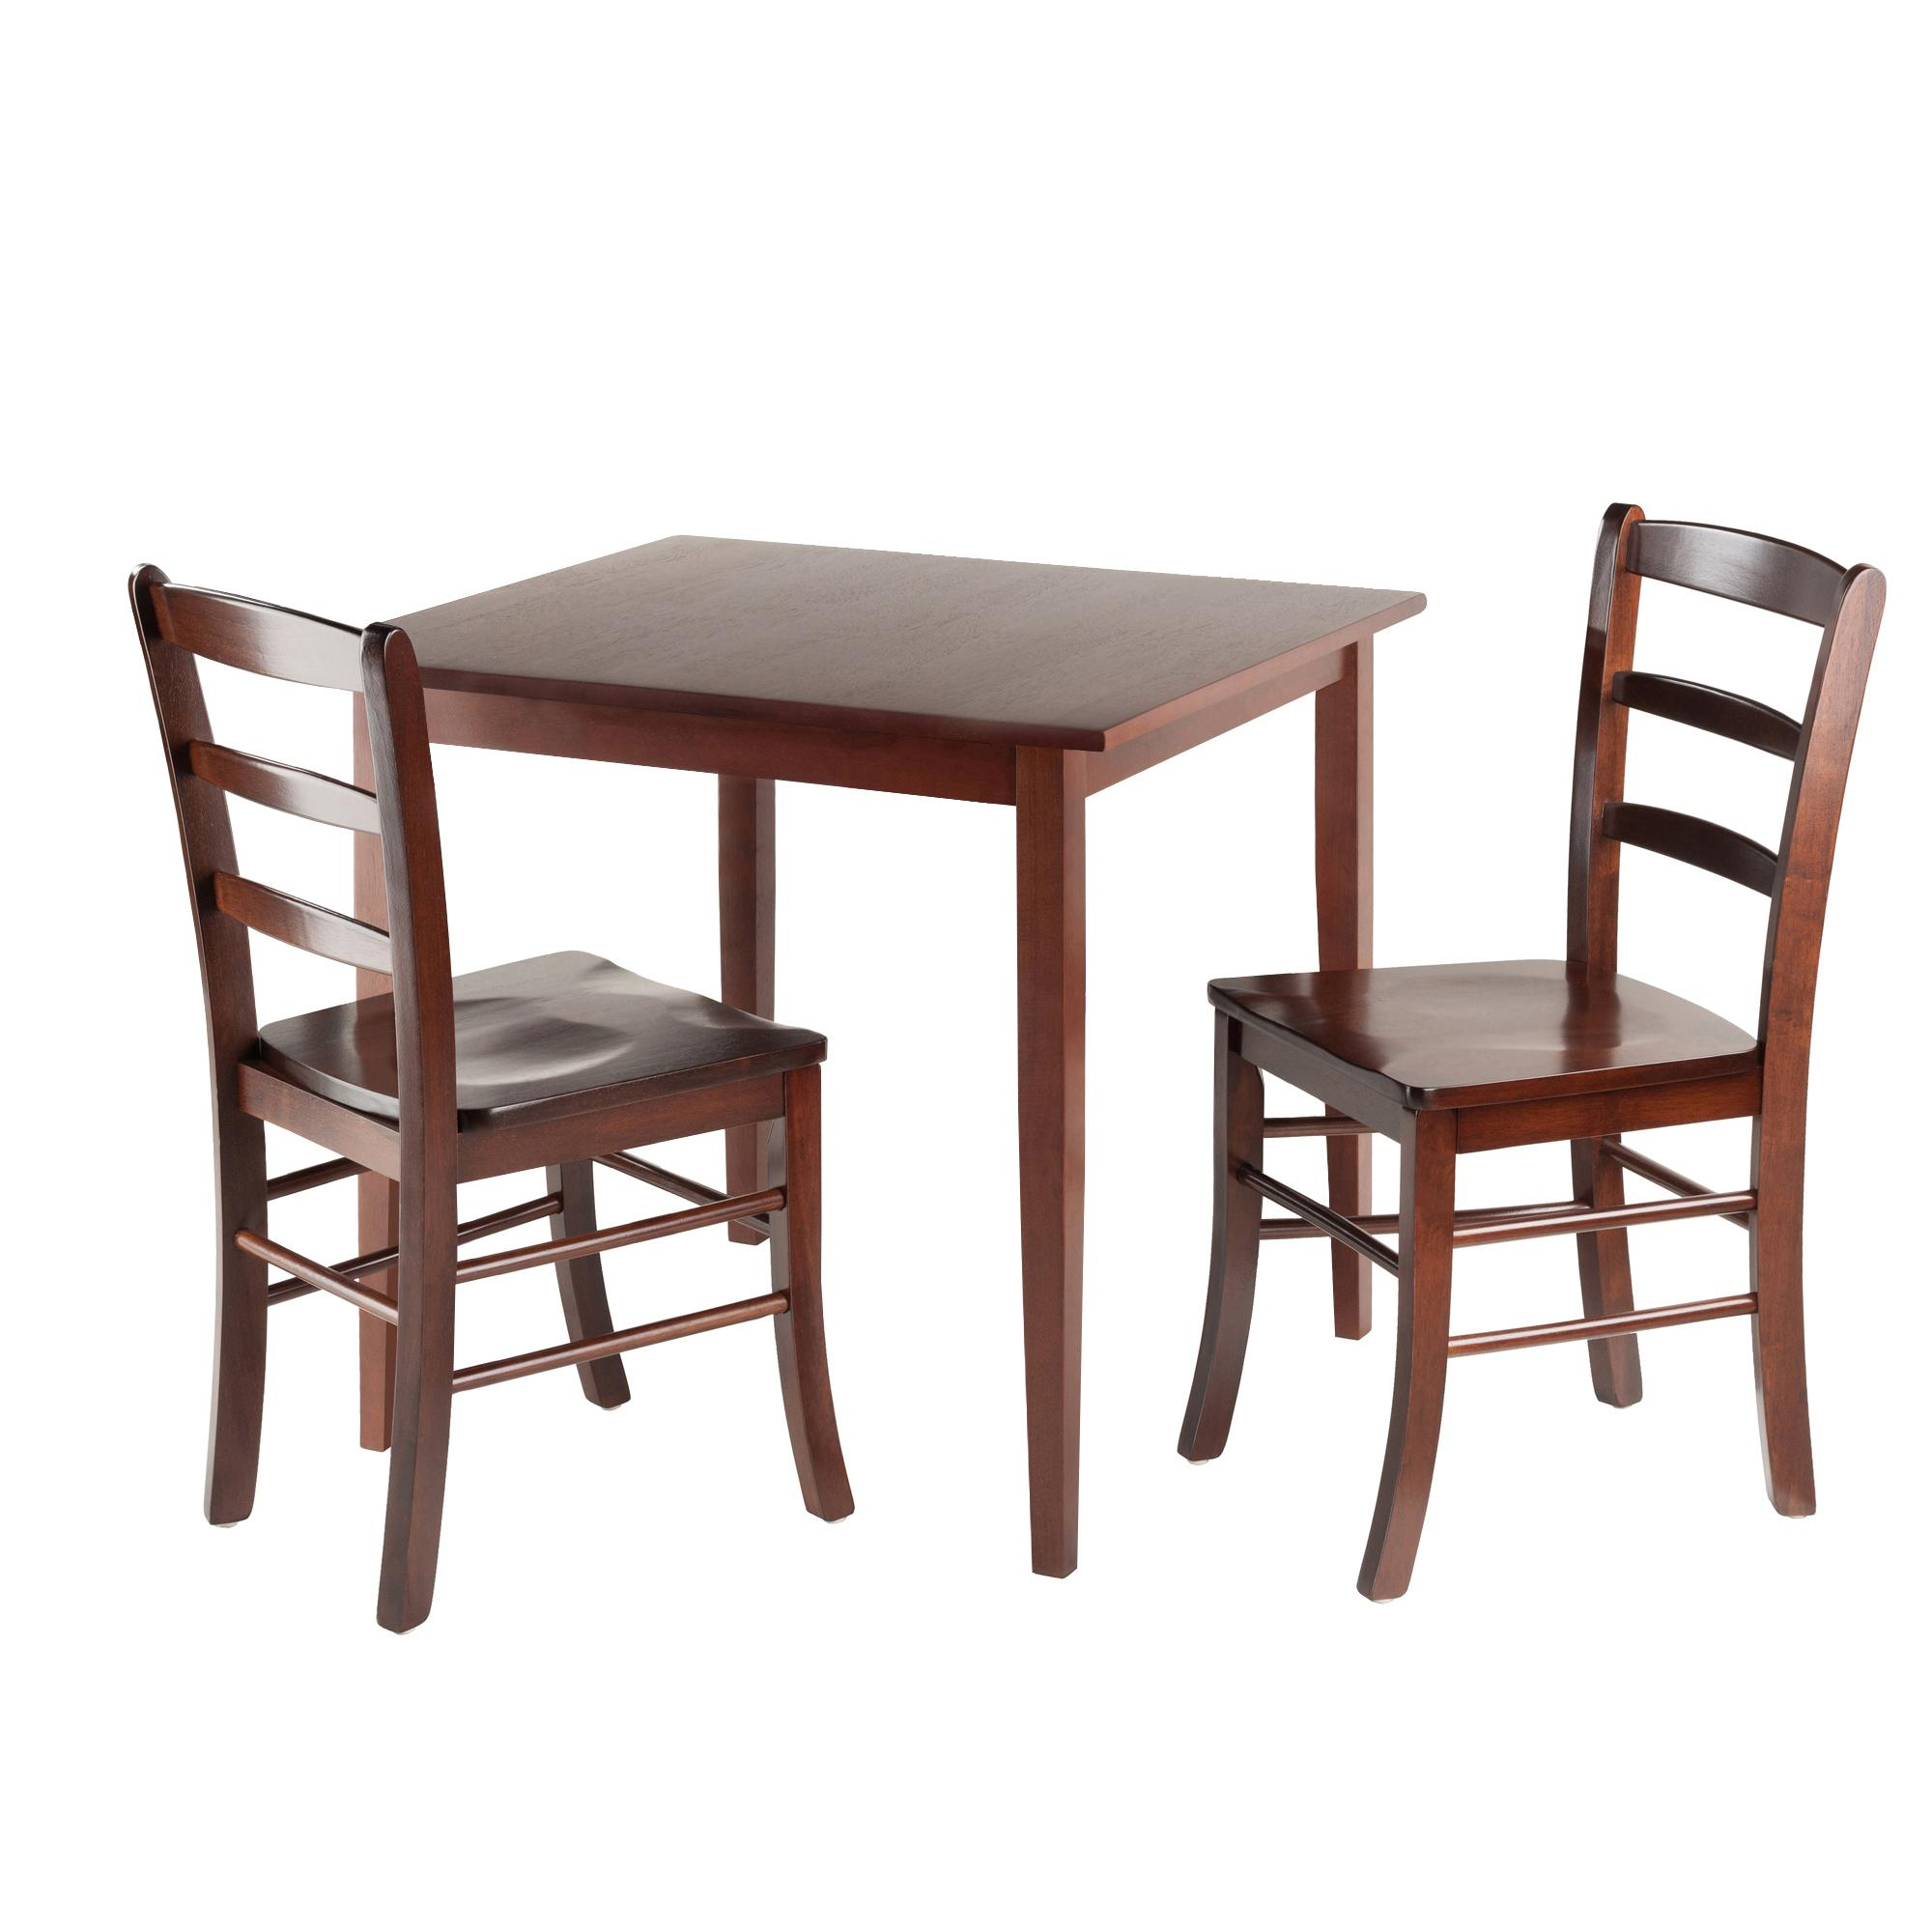 set table toppers accent sizes kitchen glass tile concrete and topper round outdoor cover chairs wood white marble astonishing tablecloth garden red tops wooden dining small patio